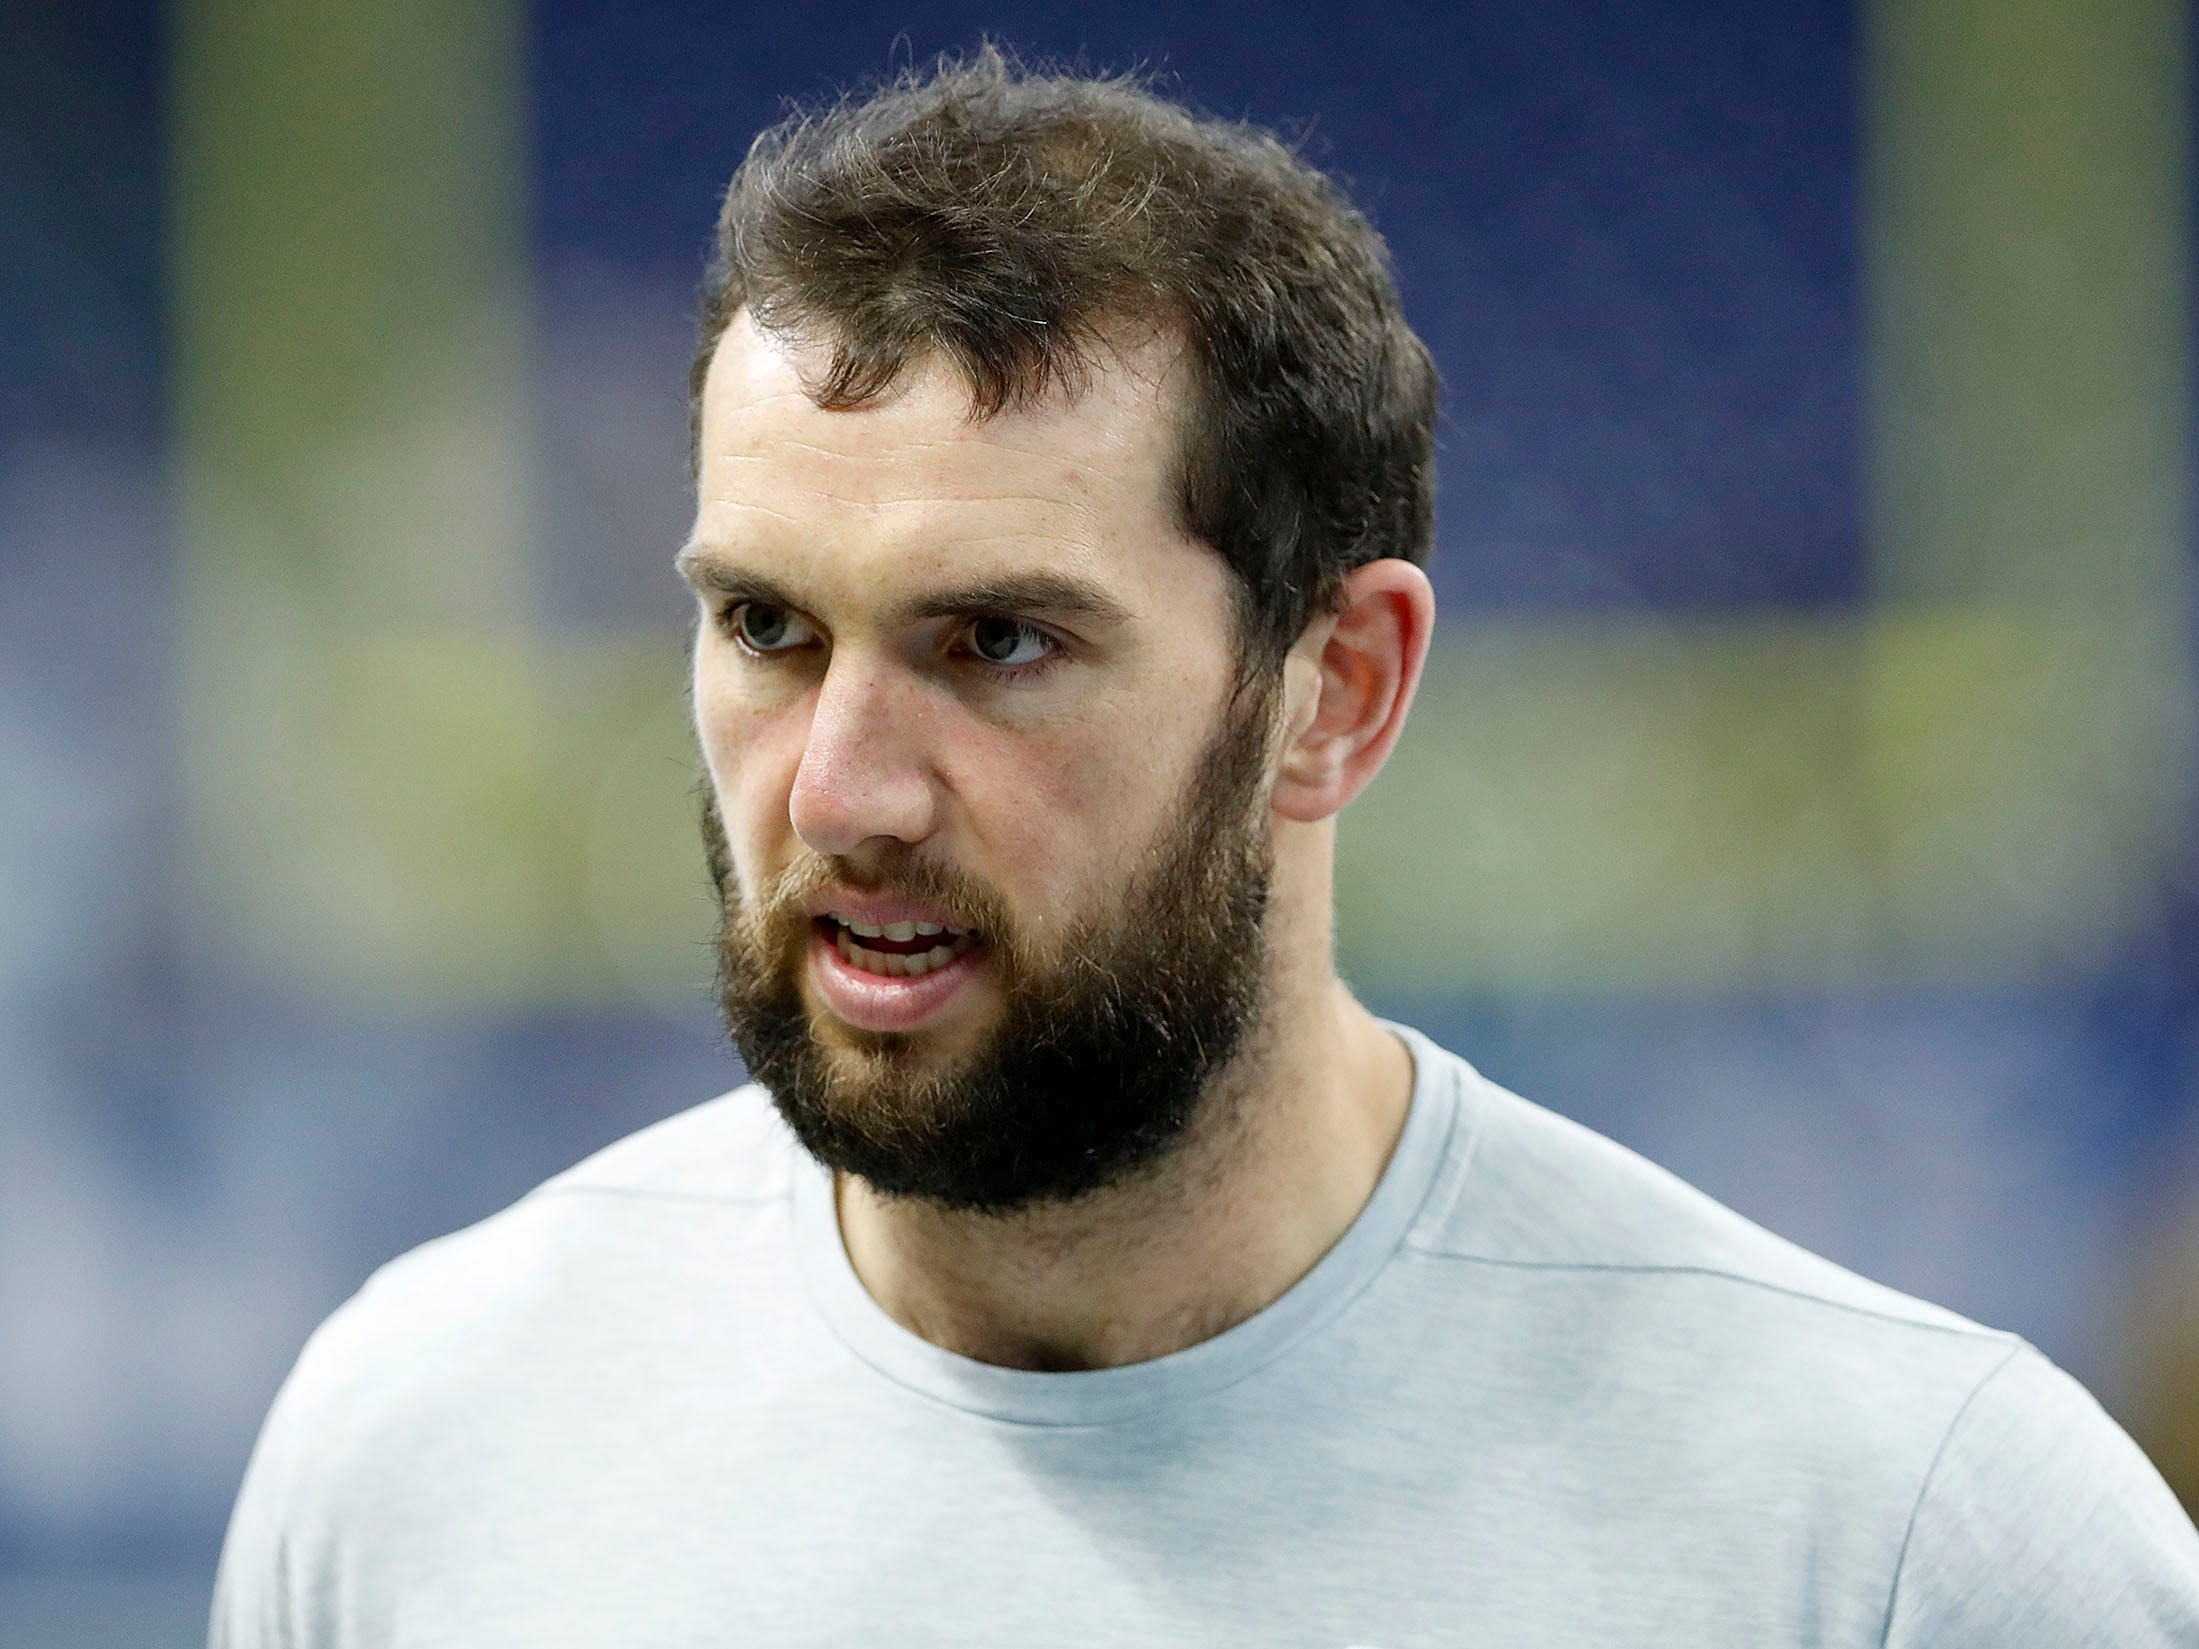 Indianapolis Colts quarterback Andrew Luck (12) before the start of their game against the Dallas Cowboys at Lucas Oil Stadium on Sunday, Dec. 16, 2018.